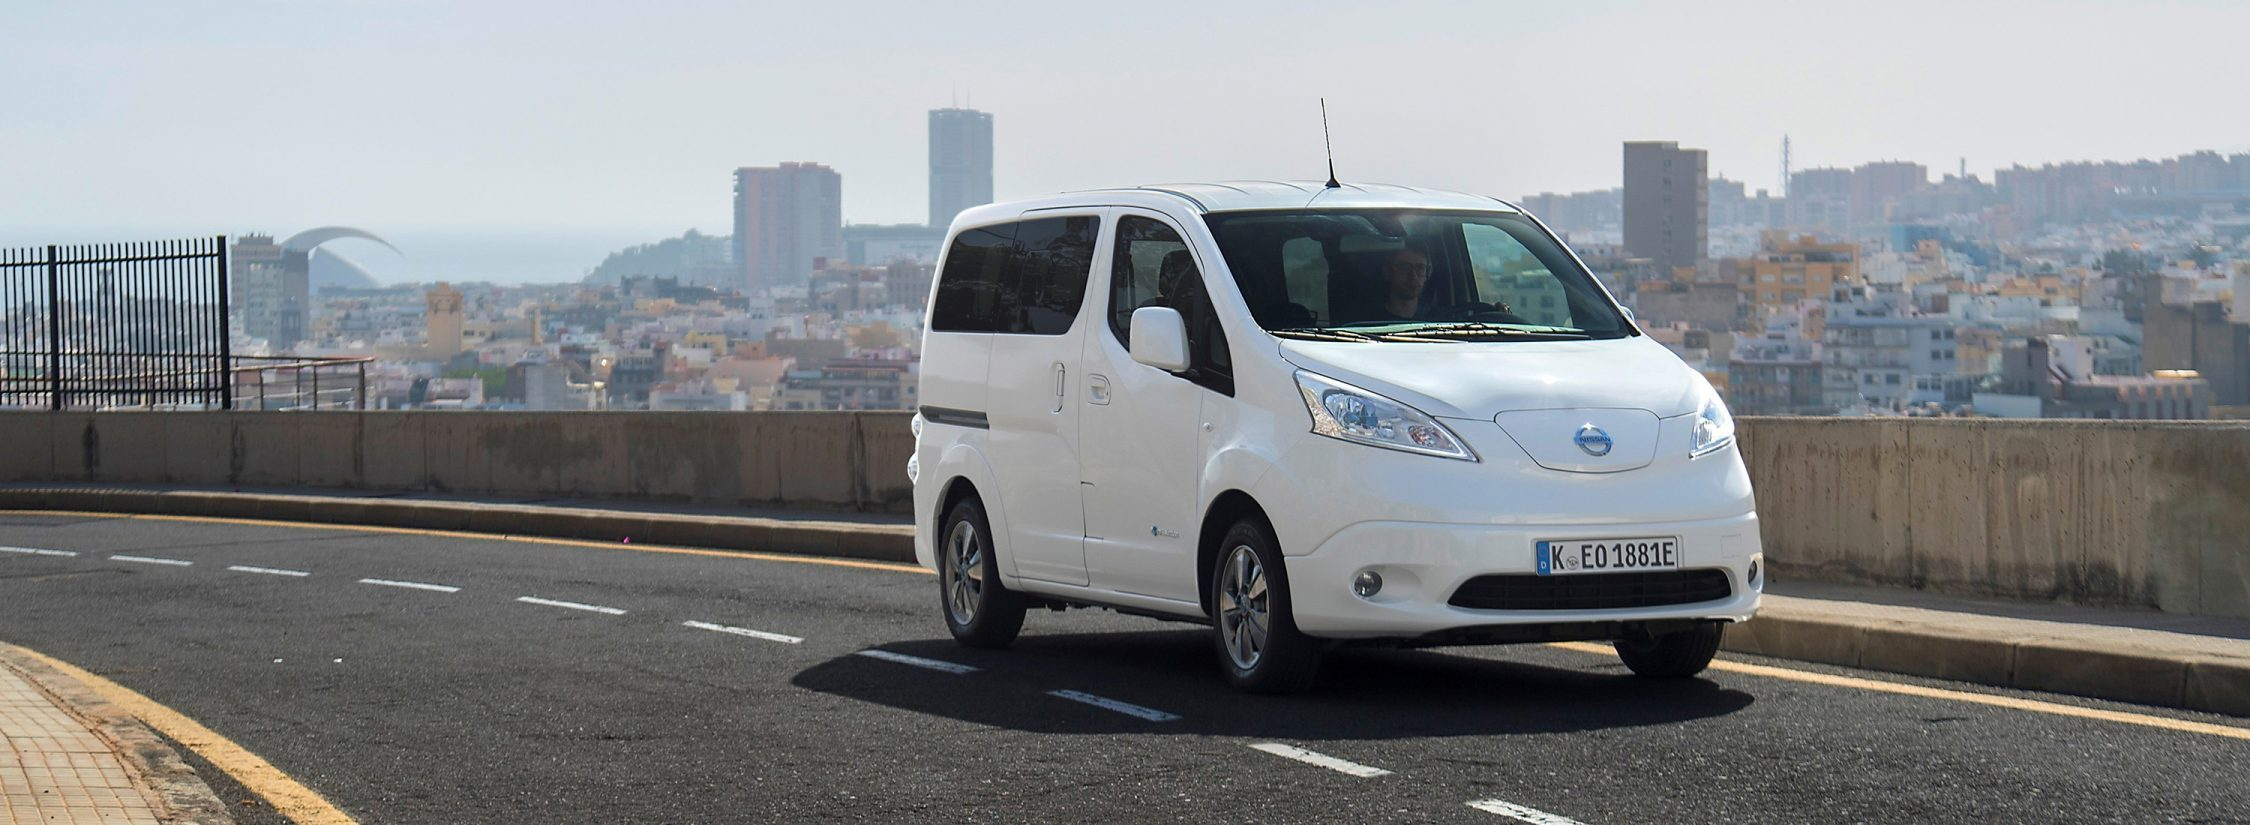 New Nissan e-NV200 Evalia driving in the city